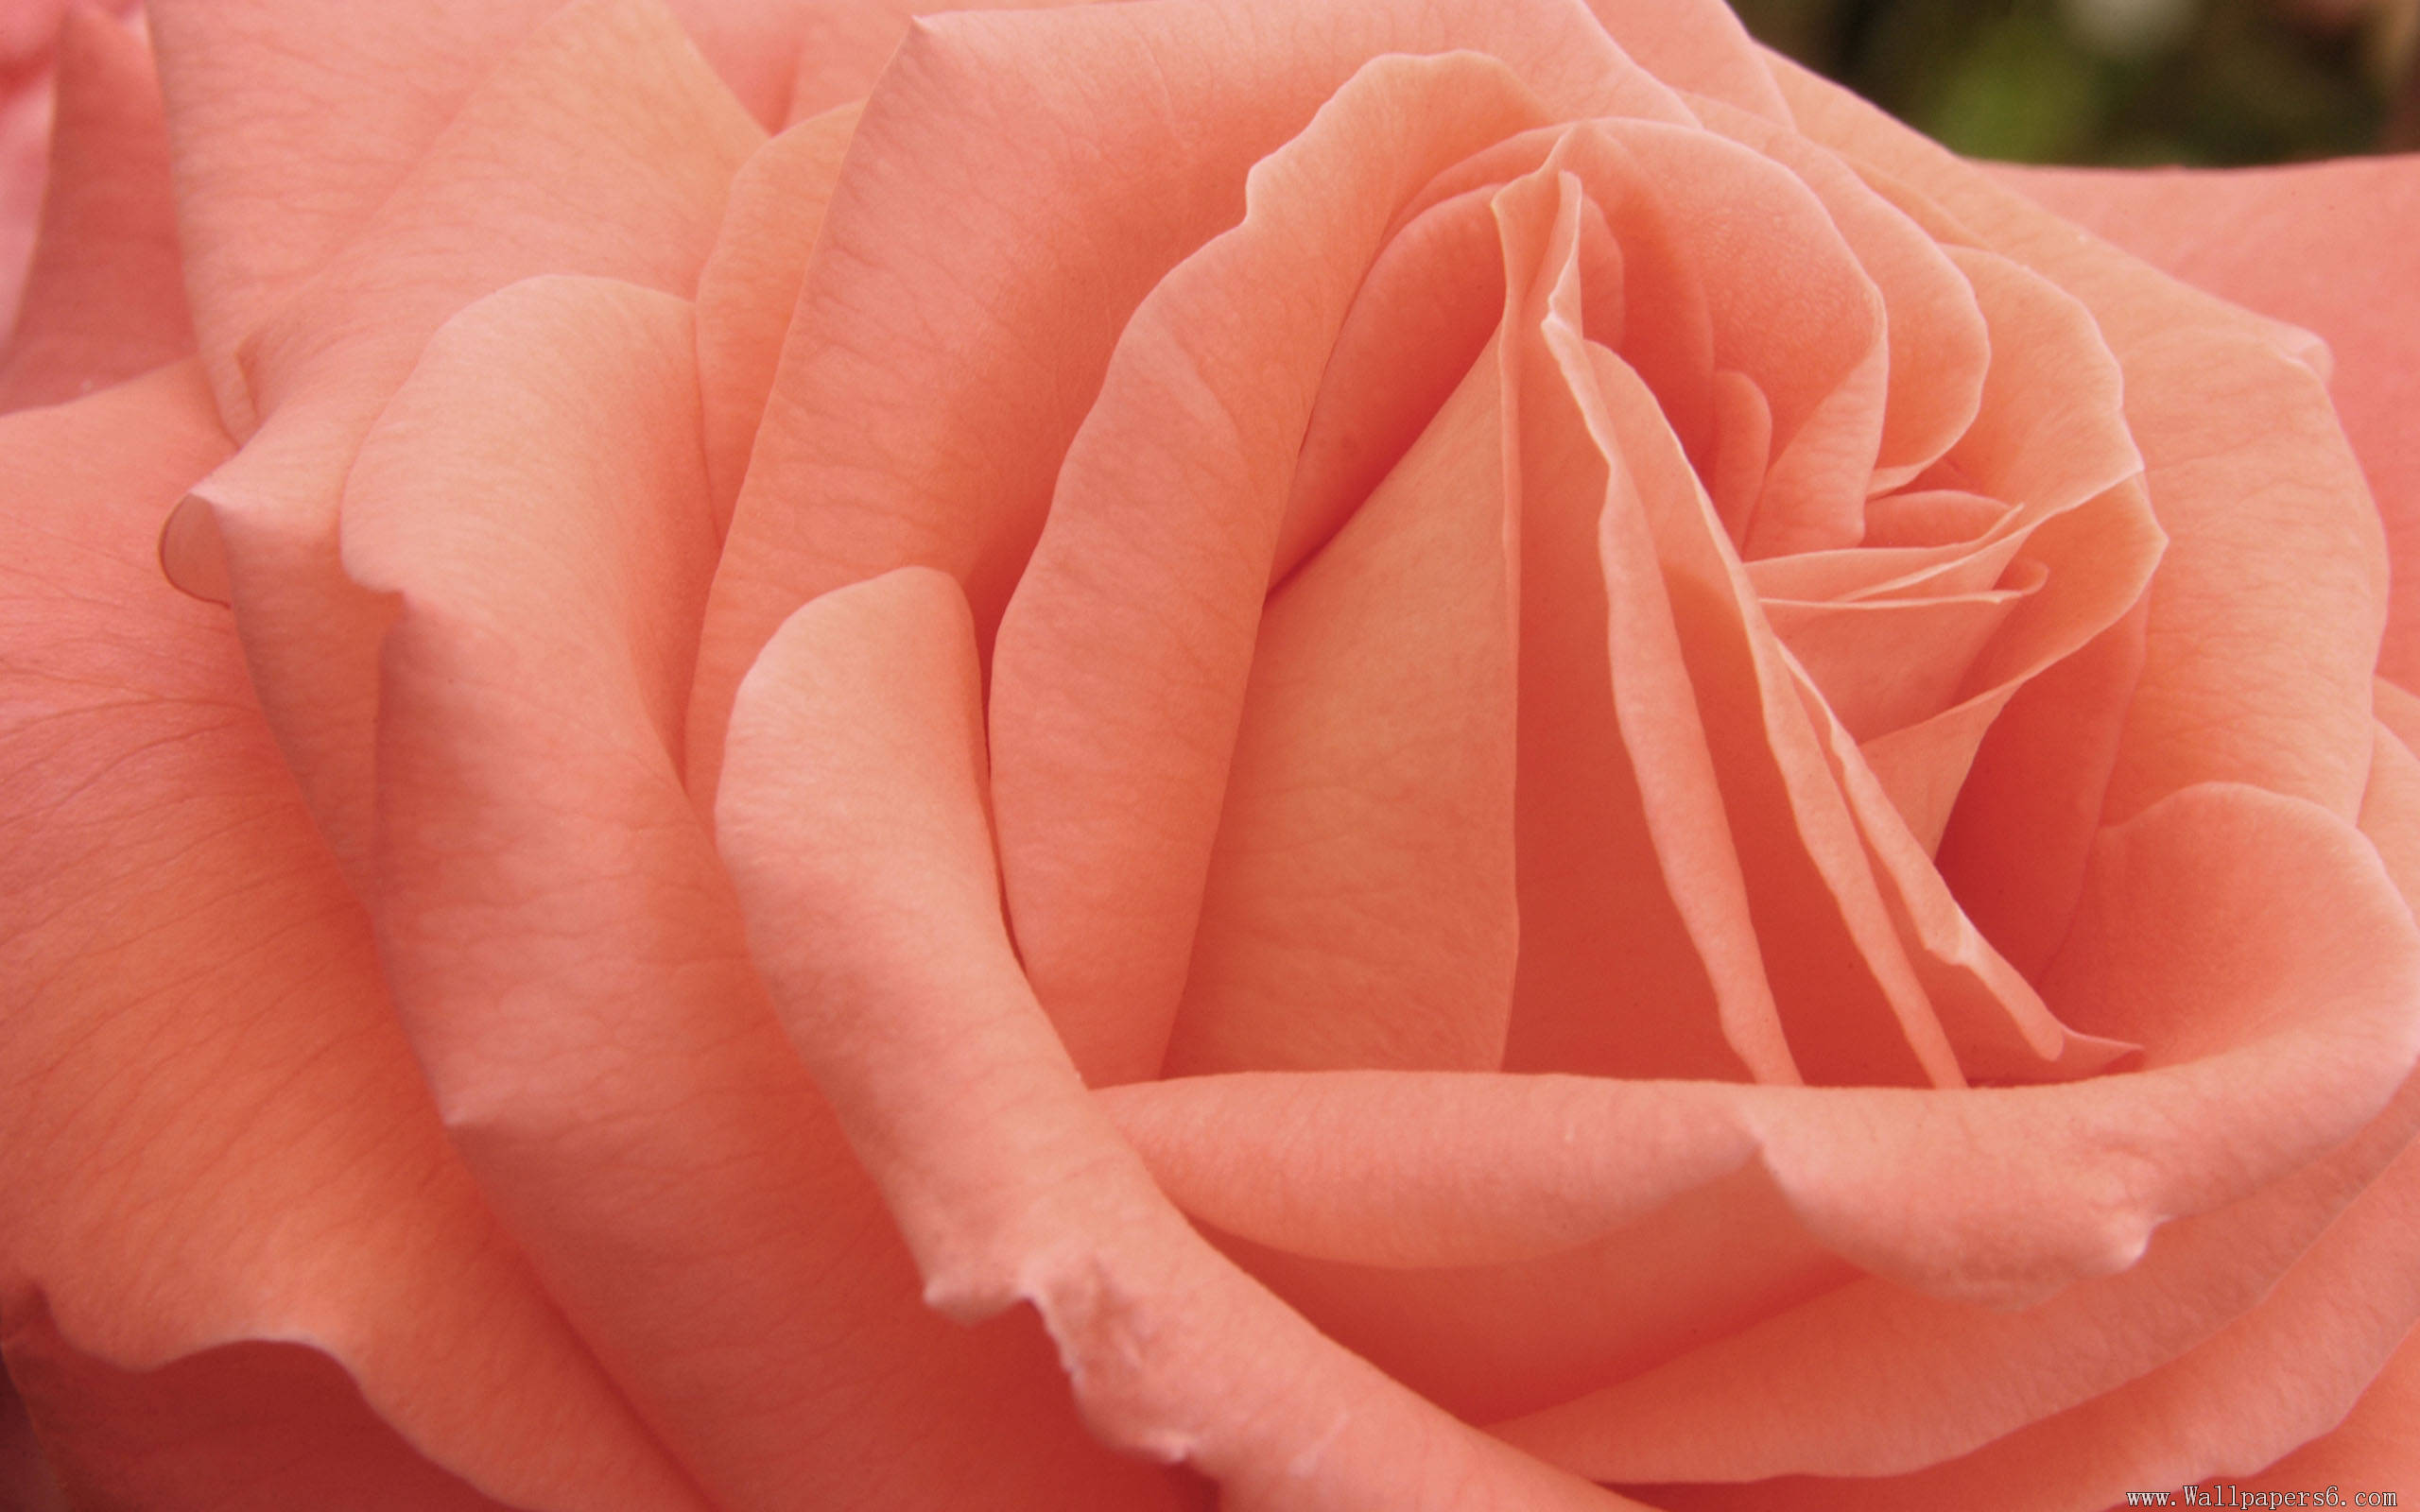 Free Colorful Flower Wallpaper Downloads: Nature Wallpaper With Peach Colored Rose Flower